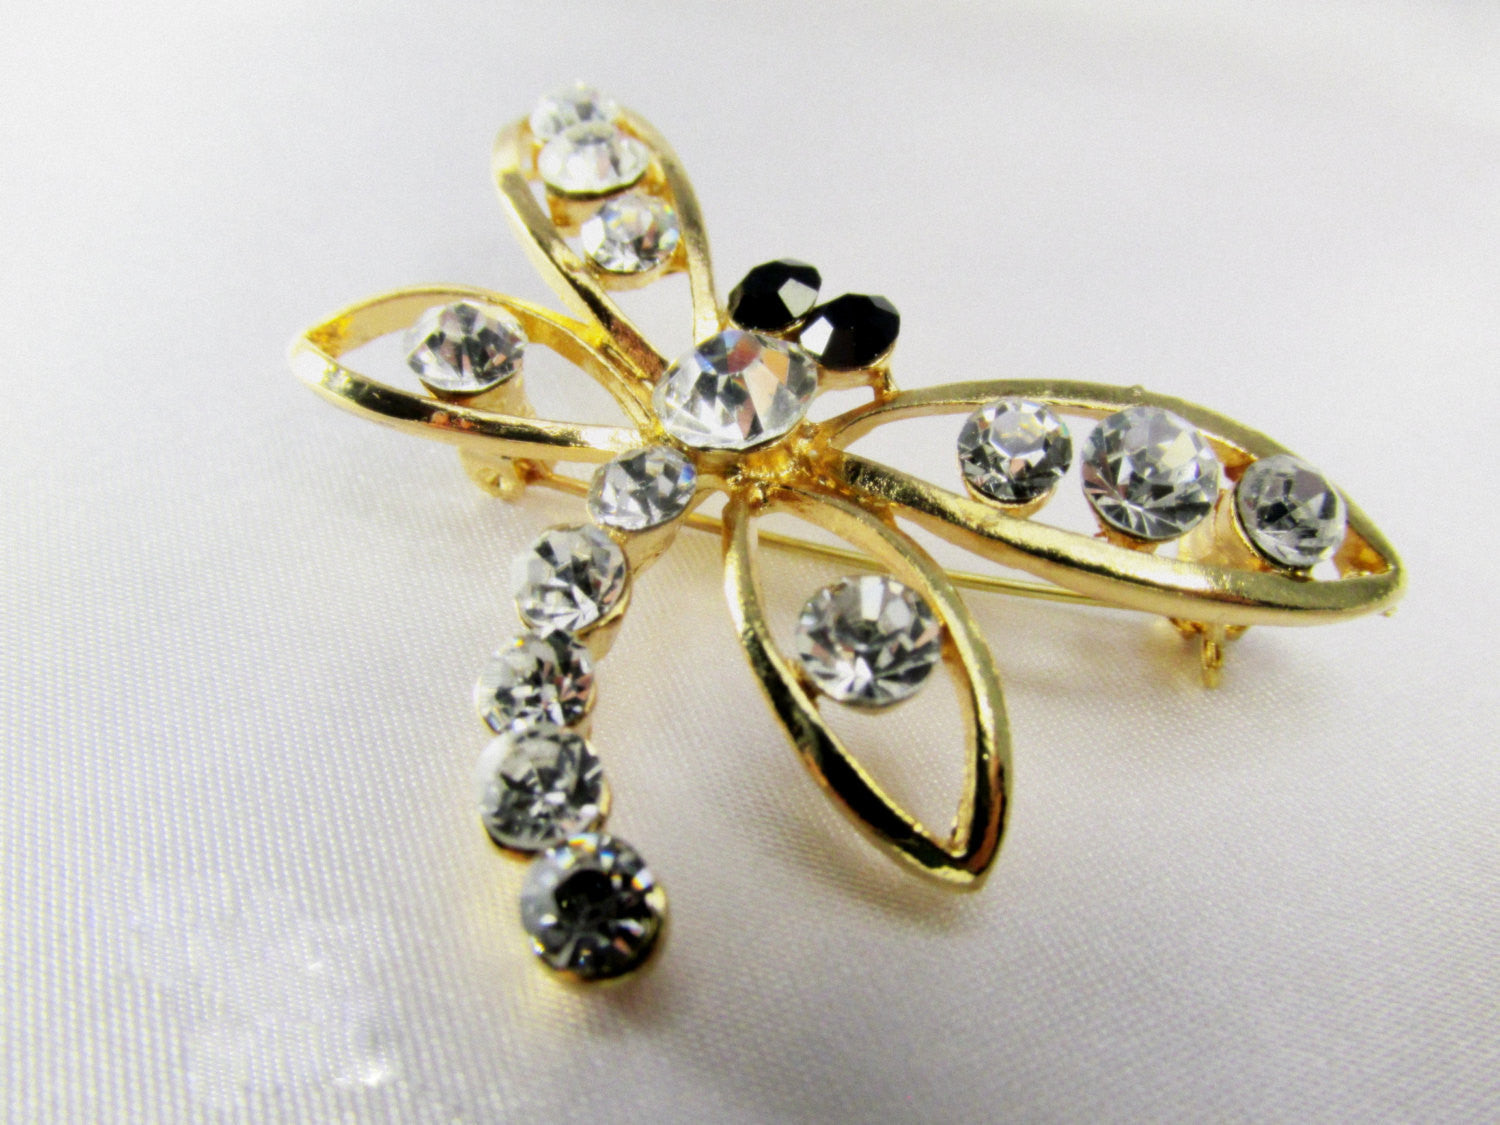 Dragonfly 2 Inch Brooch in Gold, Crystal and Black - Odyssey Creations